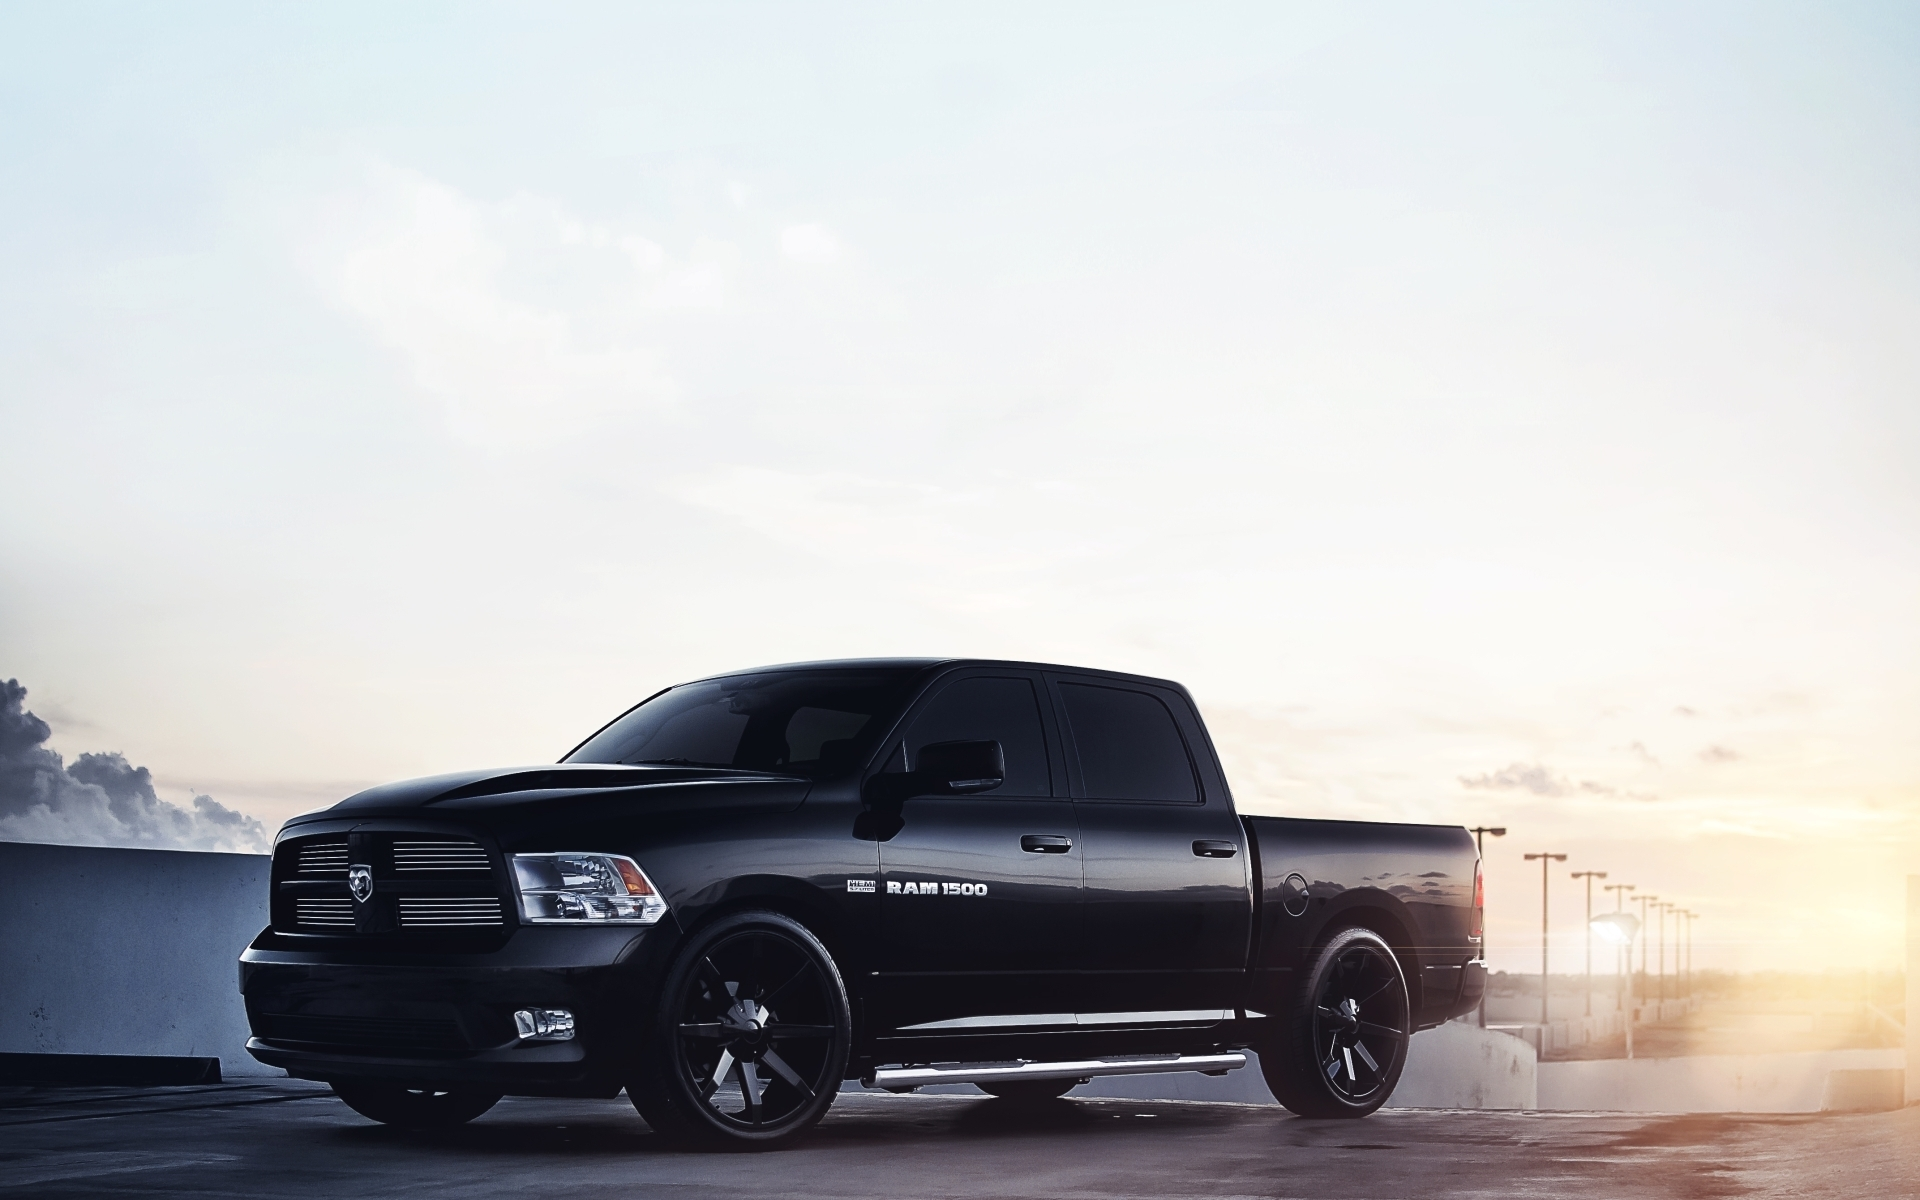 Dodge Wallpaper 789988 HD Dodge Wallpaper 827946 Dodge Ram Wallpaper 1920x1200